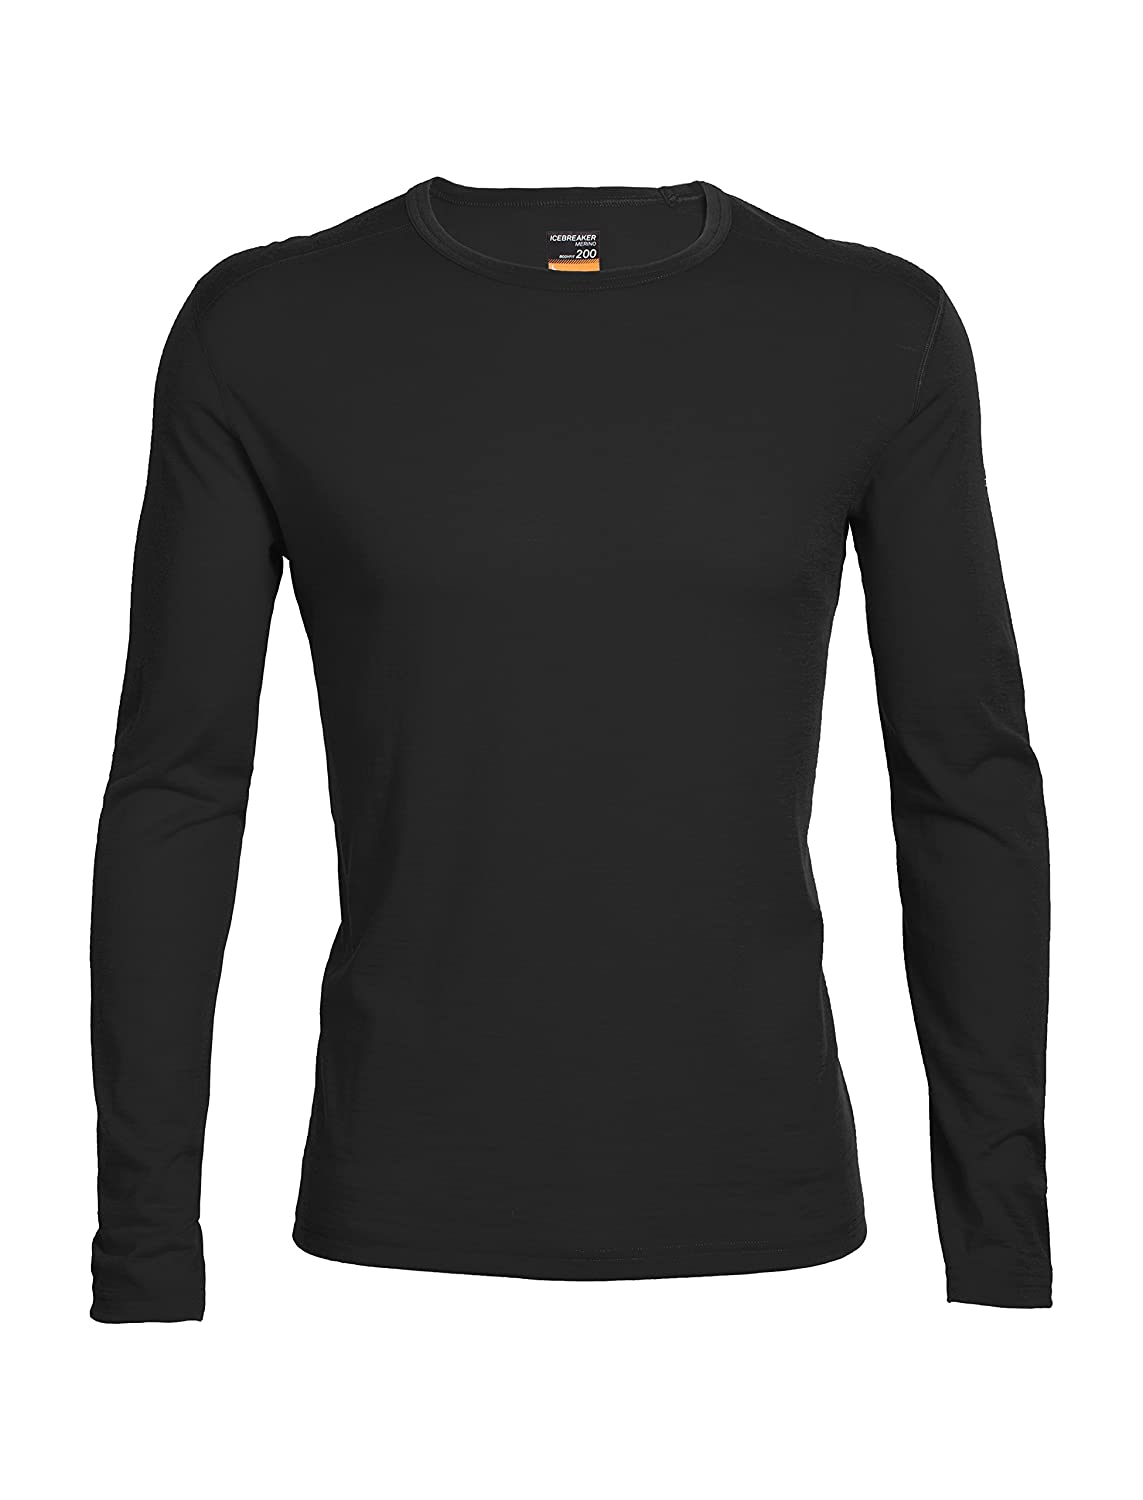 f4a4462ea4 Amazon.com: Icebreaker Merino Men's Oasis Long Sleeve Crewe Top: Clothing